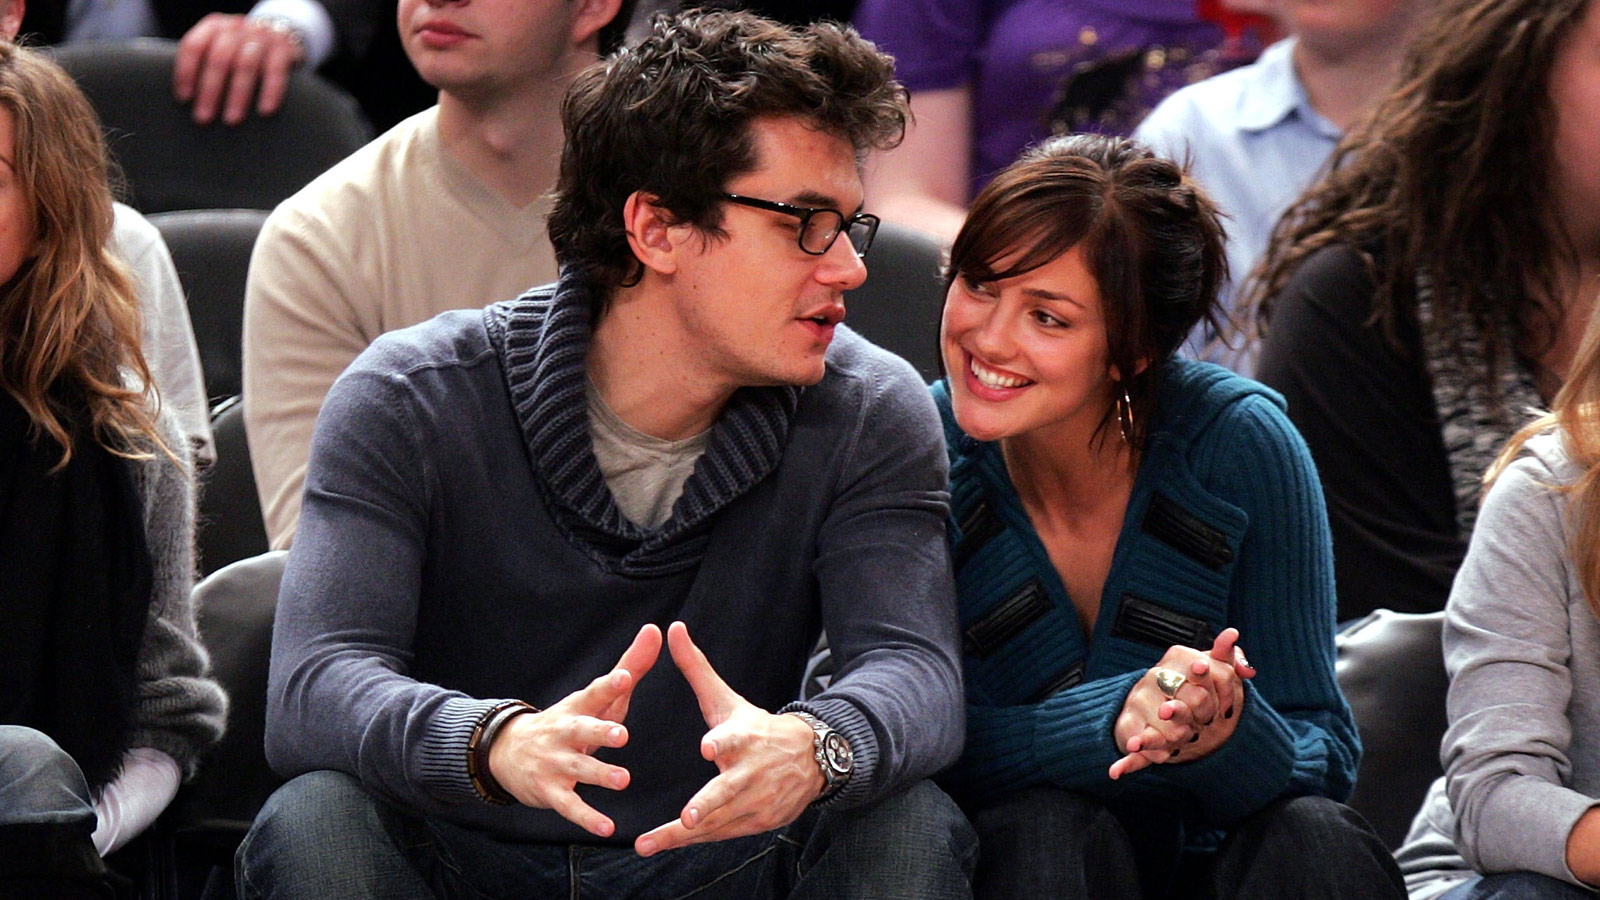 PHOTO: Musician John Mayer and actress Minka Kelly attend NY Knicks vs Miami Heat game at Madison Square Garden in New York City on Nov. 11, 2007.